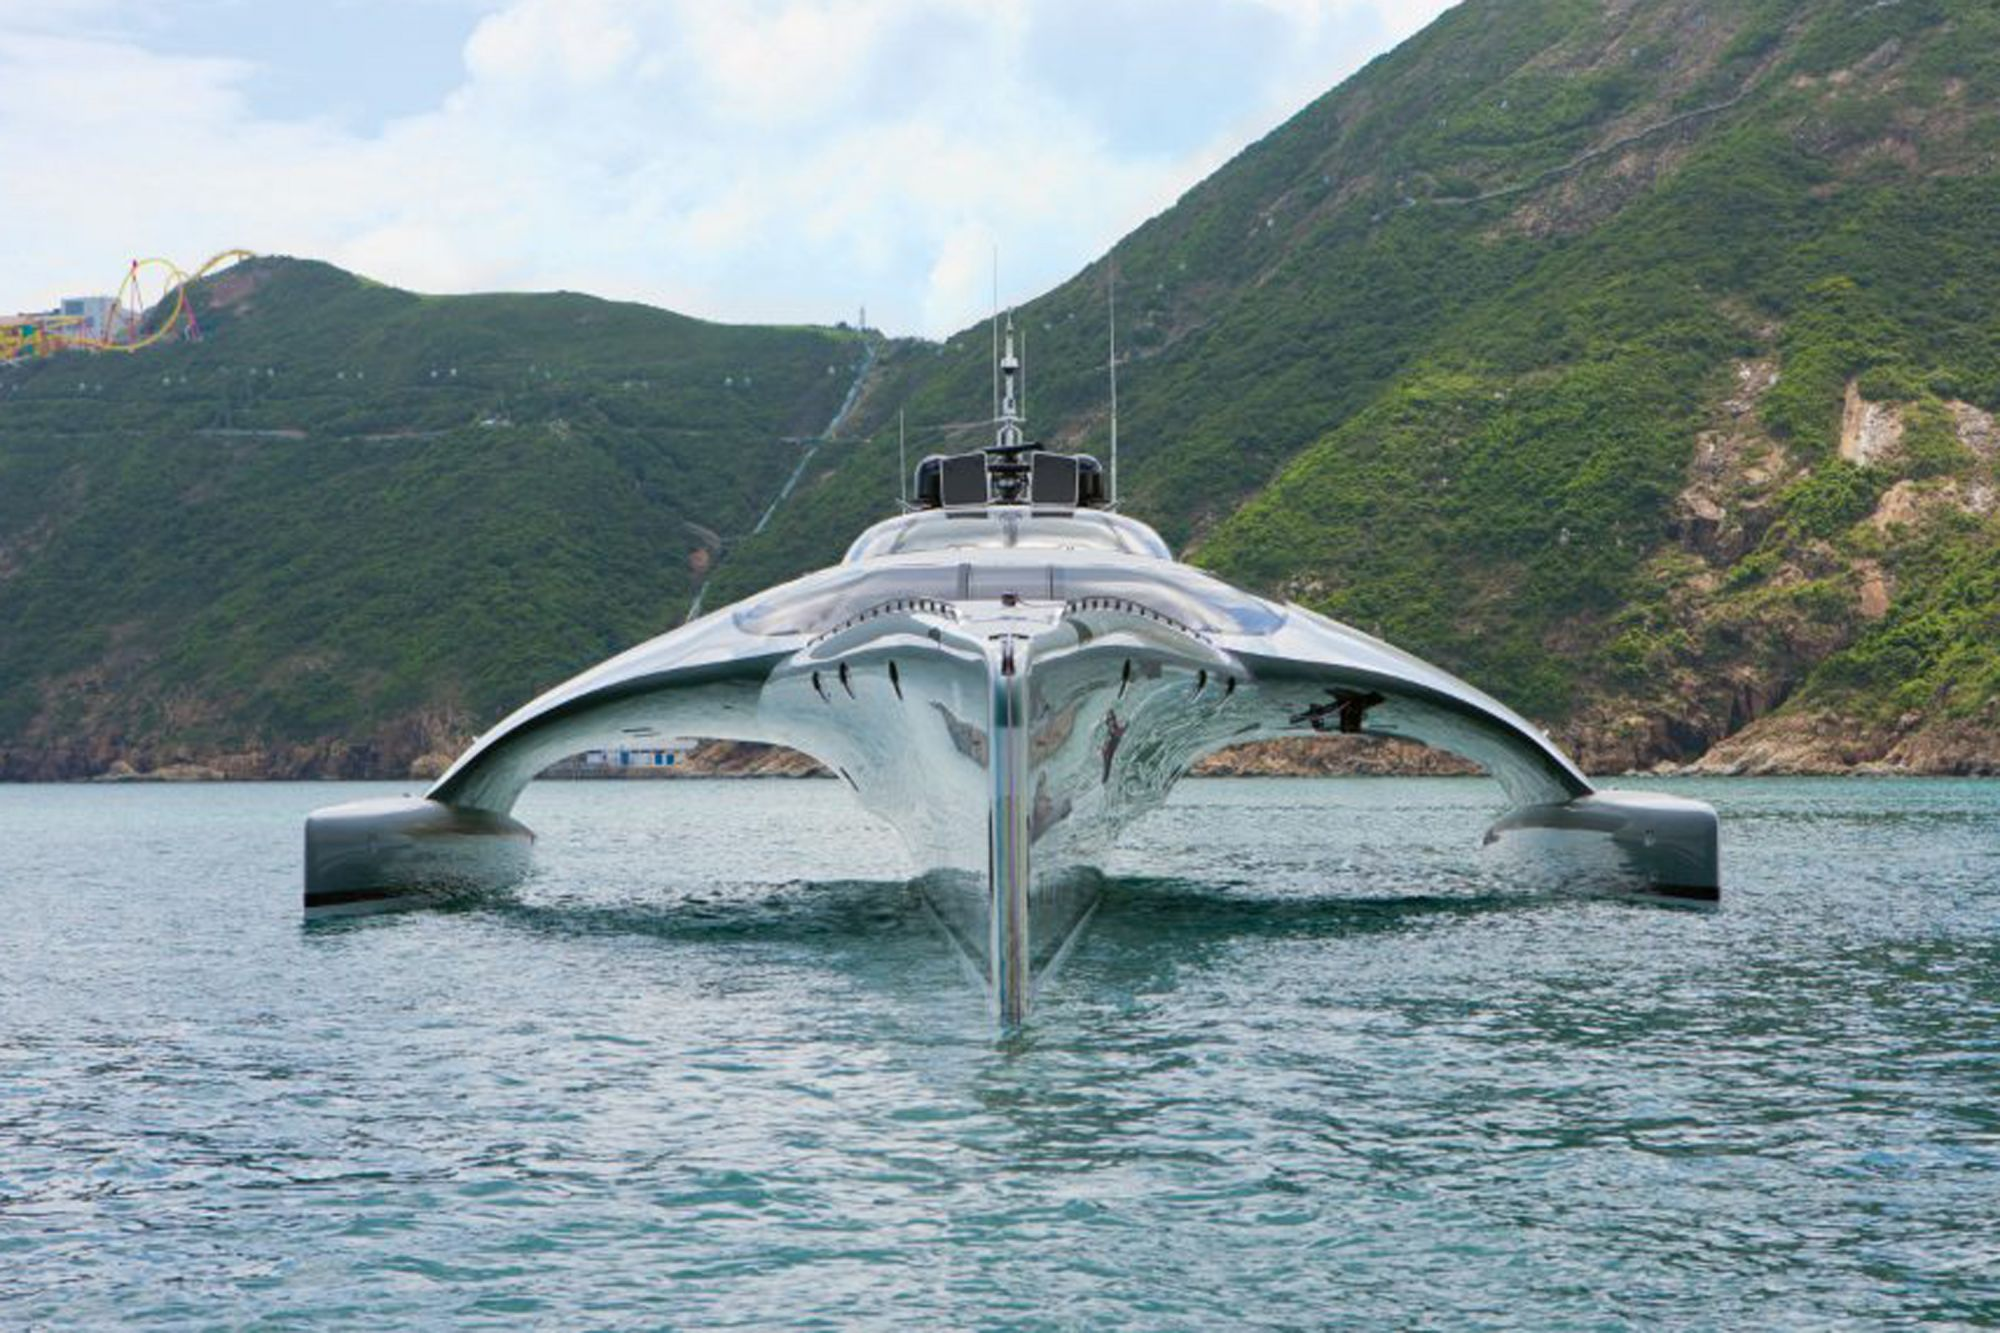 Billionaire Shipping Tycoon Anto Marden's US$15 Million Yacht Is For Sale